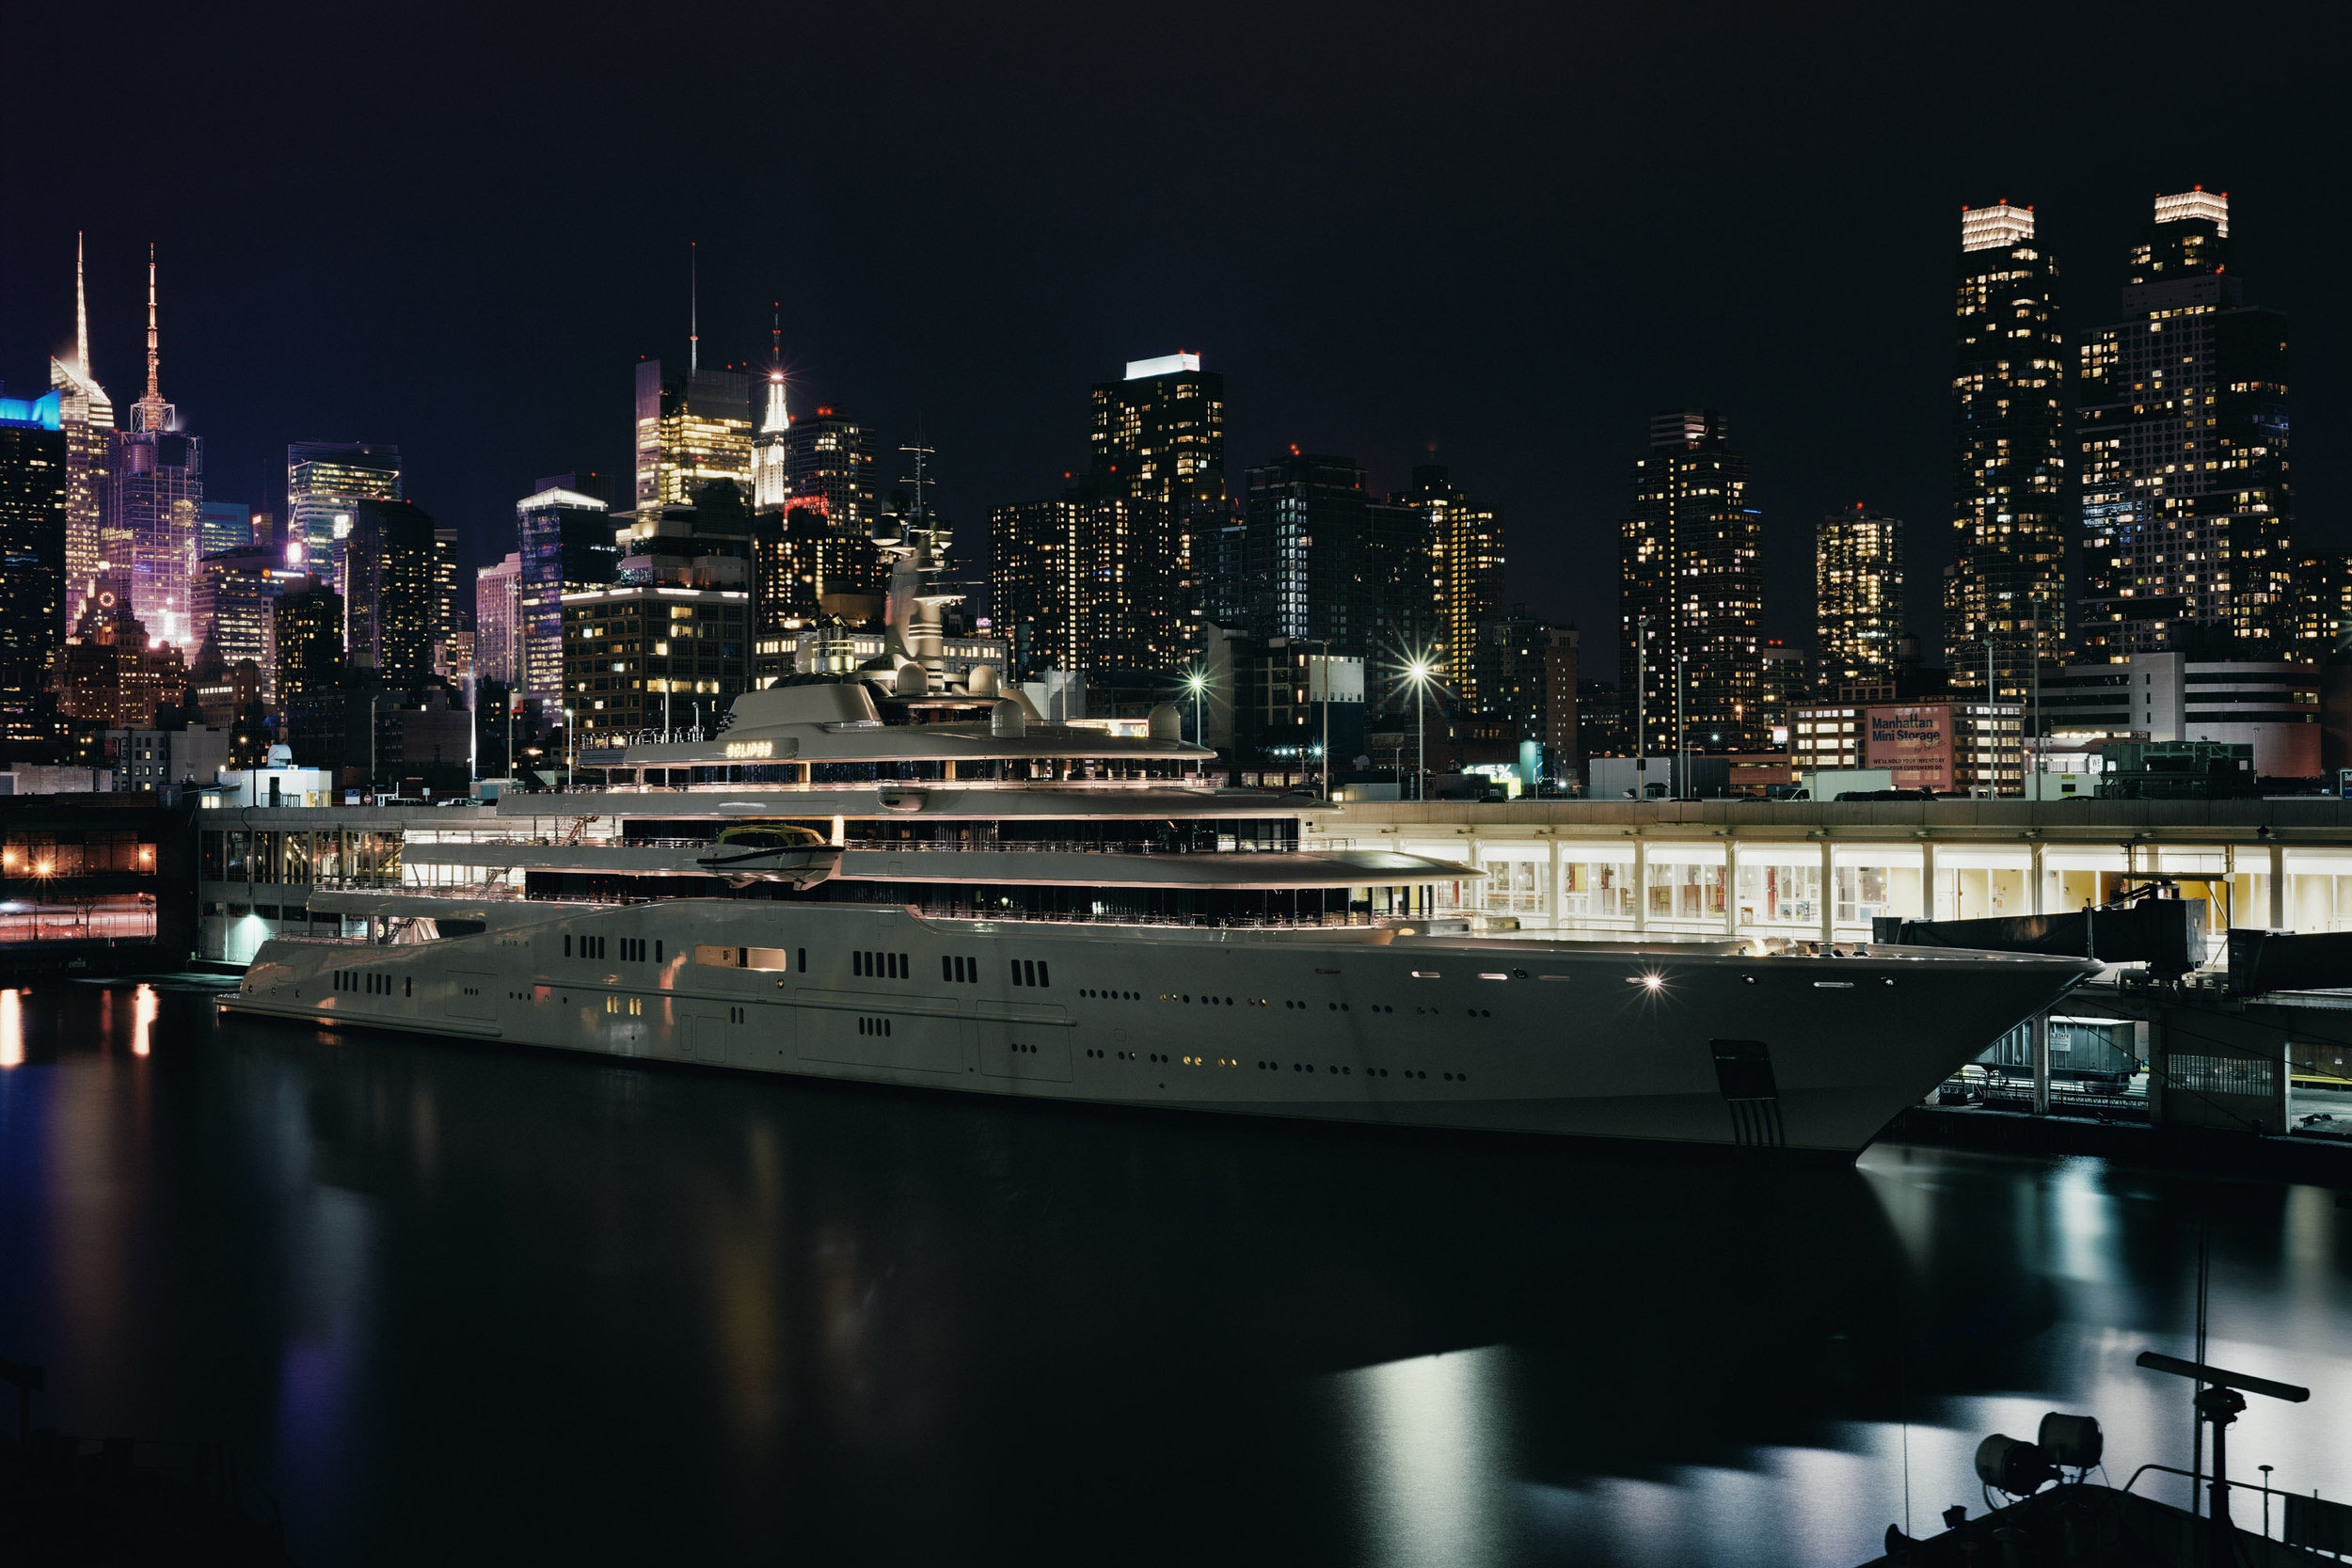 The Eclipse, a Yacht Belonging to Russian Oligarch Roman Abramovich, New York City